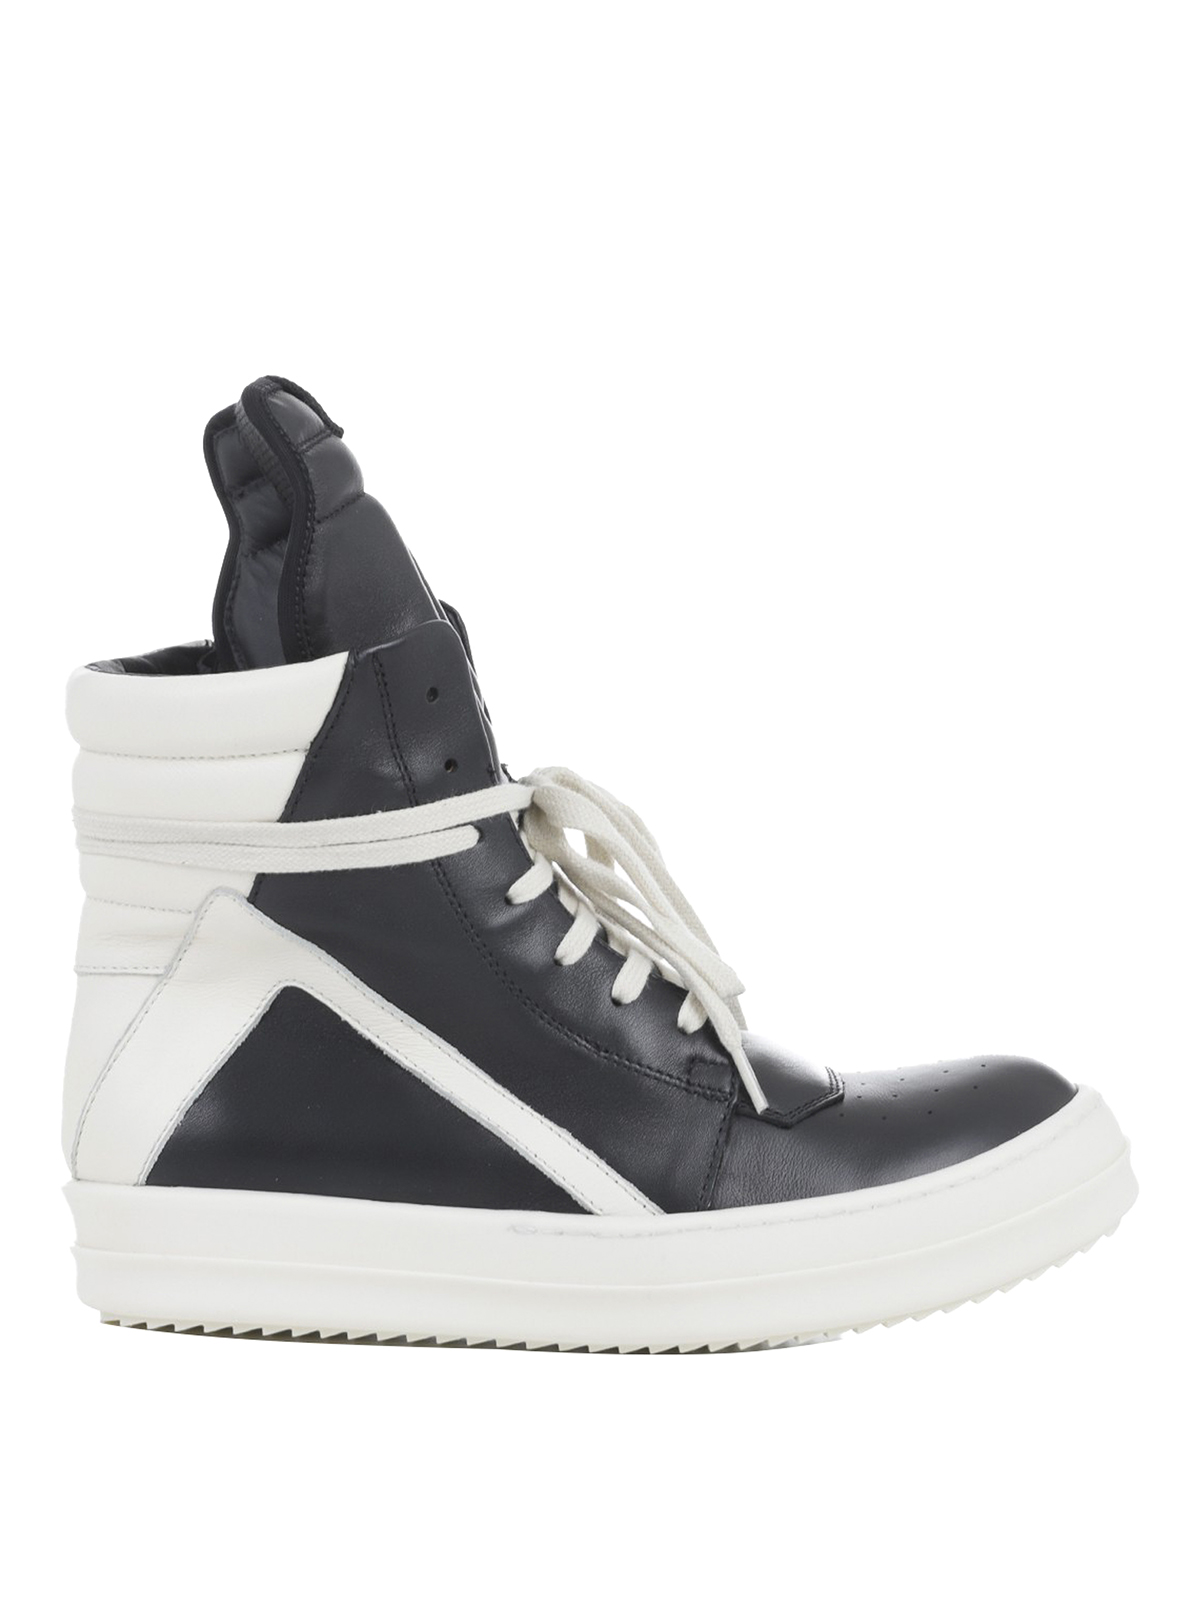 Rick Owens High Top Sneakers In Black And White